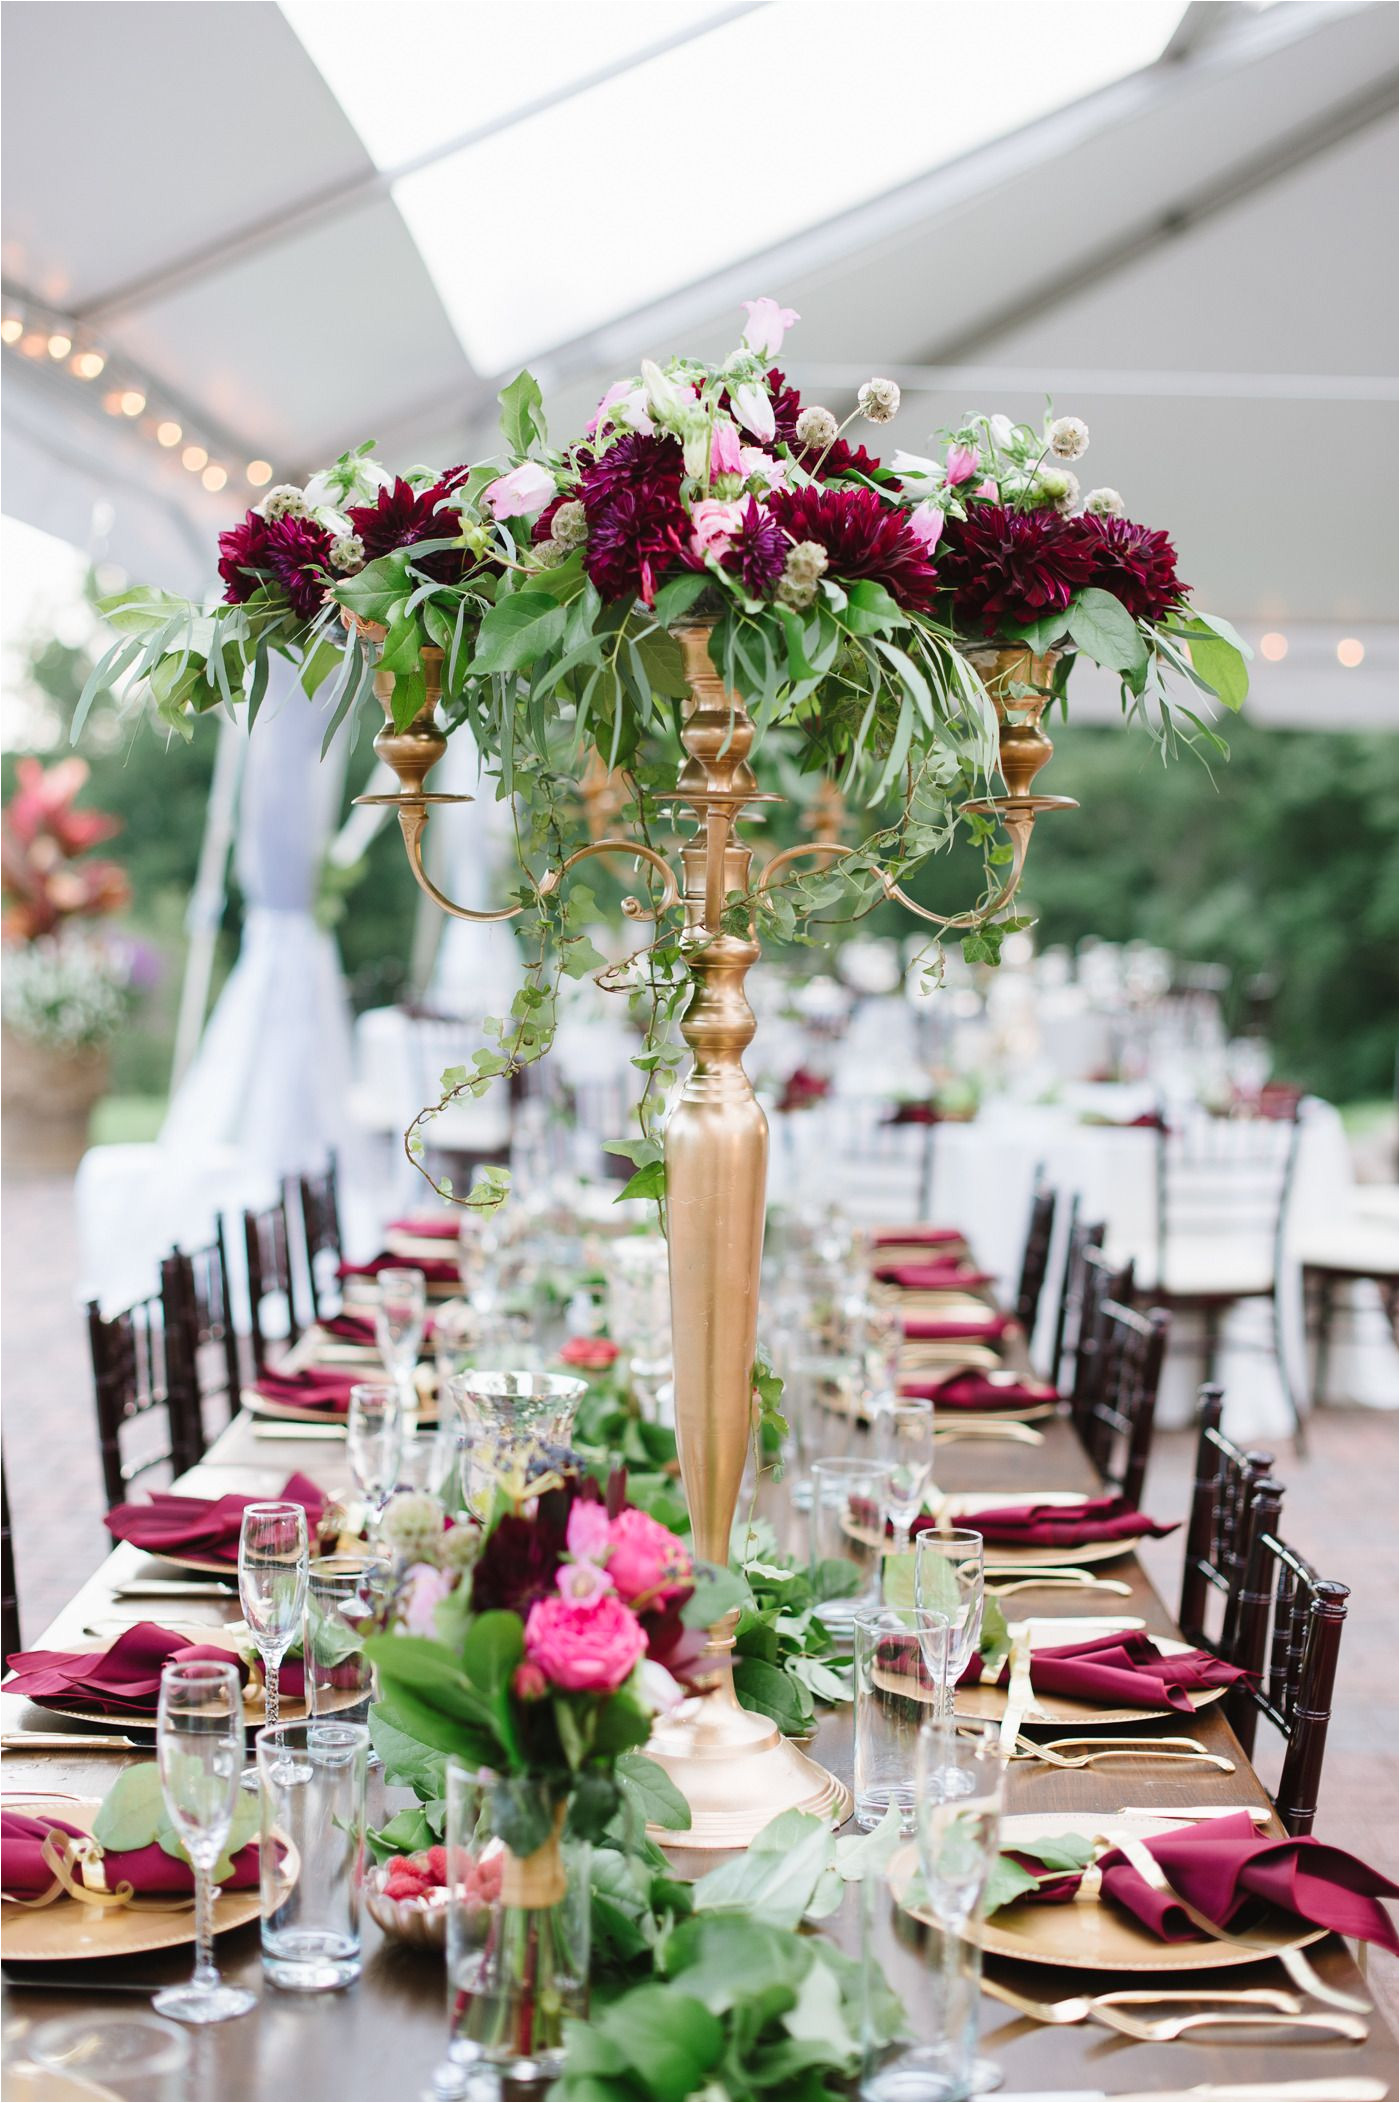 wedding centerpieces getting the best wedding centerpieces could be tough check out our free guide on wedding centerpieces it will help you make a